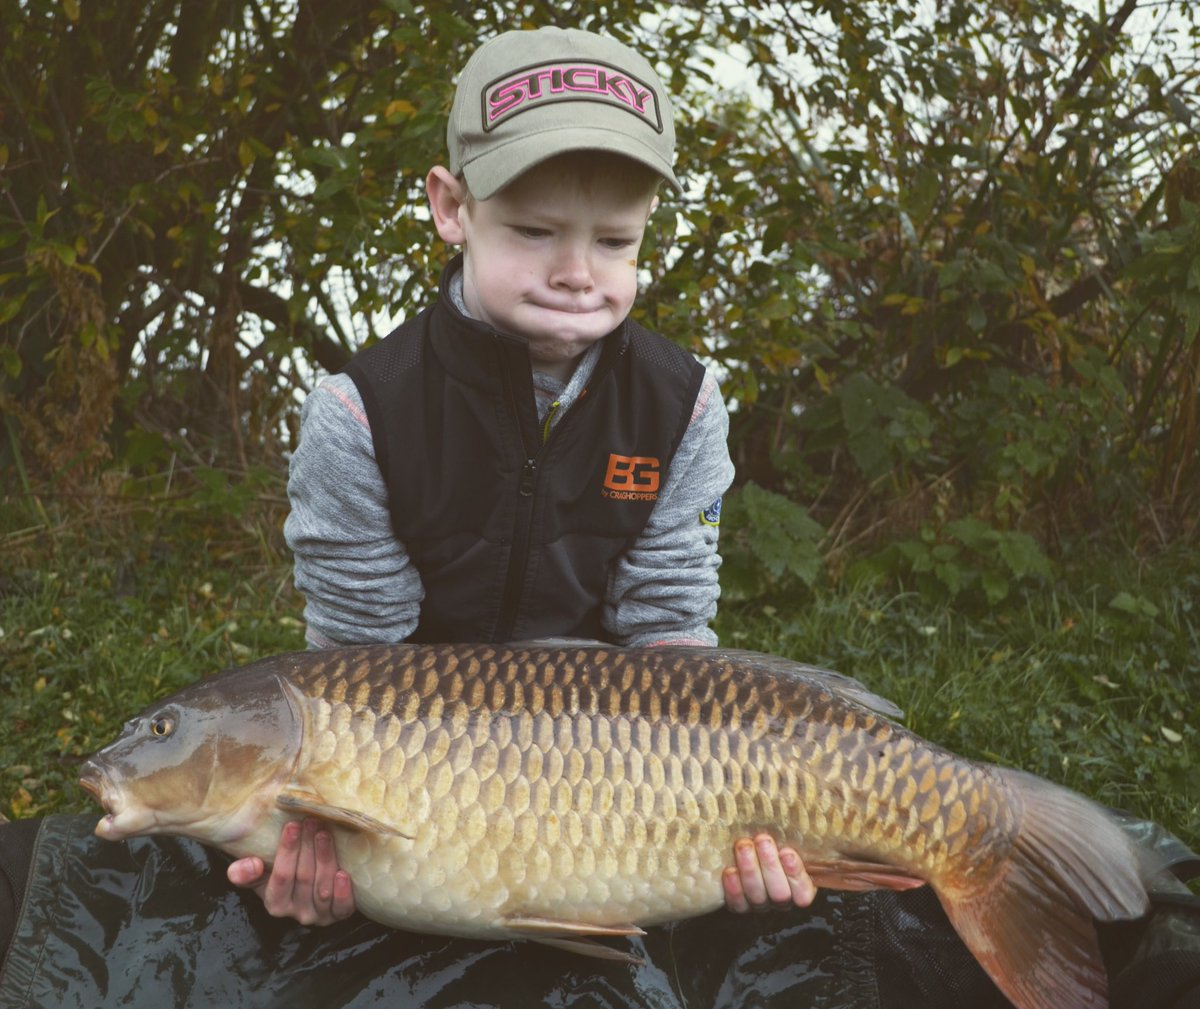 12 months ago today, fingers crossed for more tonight #getfishing #carp #carpfishing #fishing https: